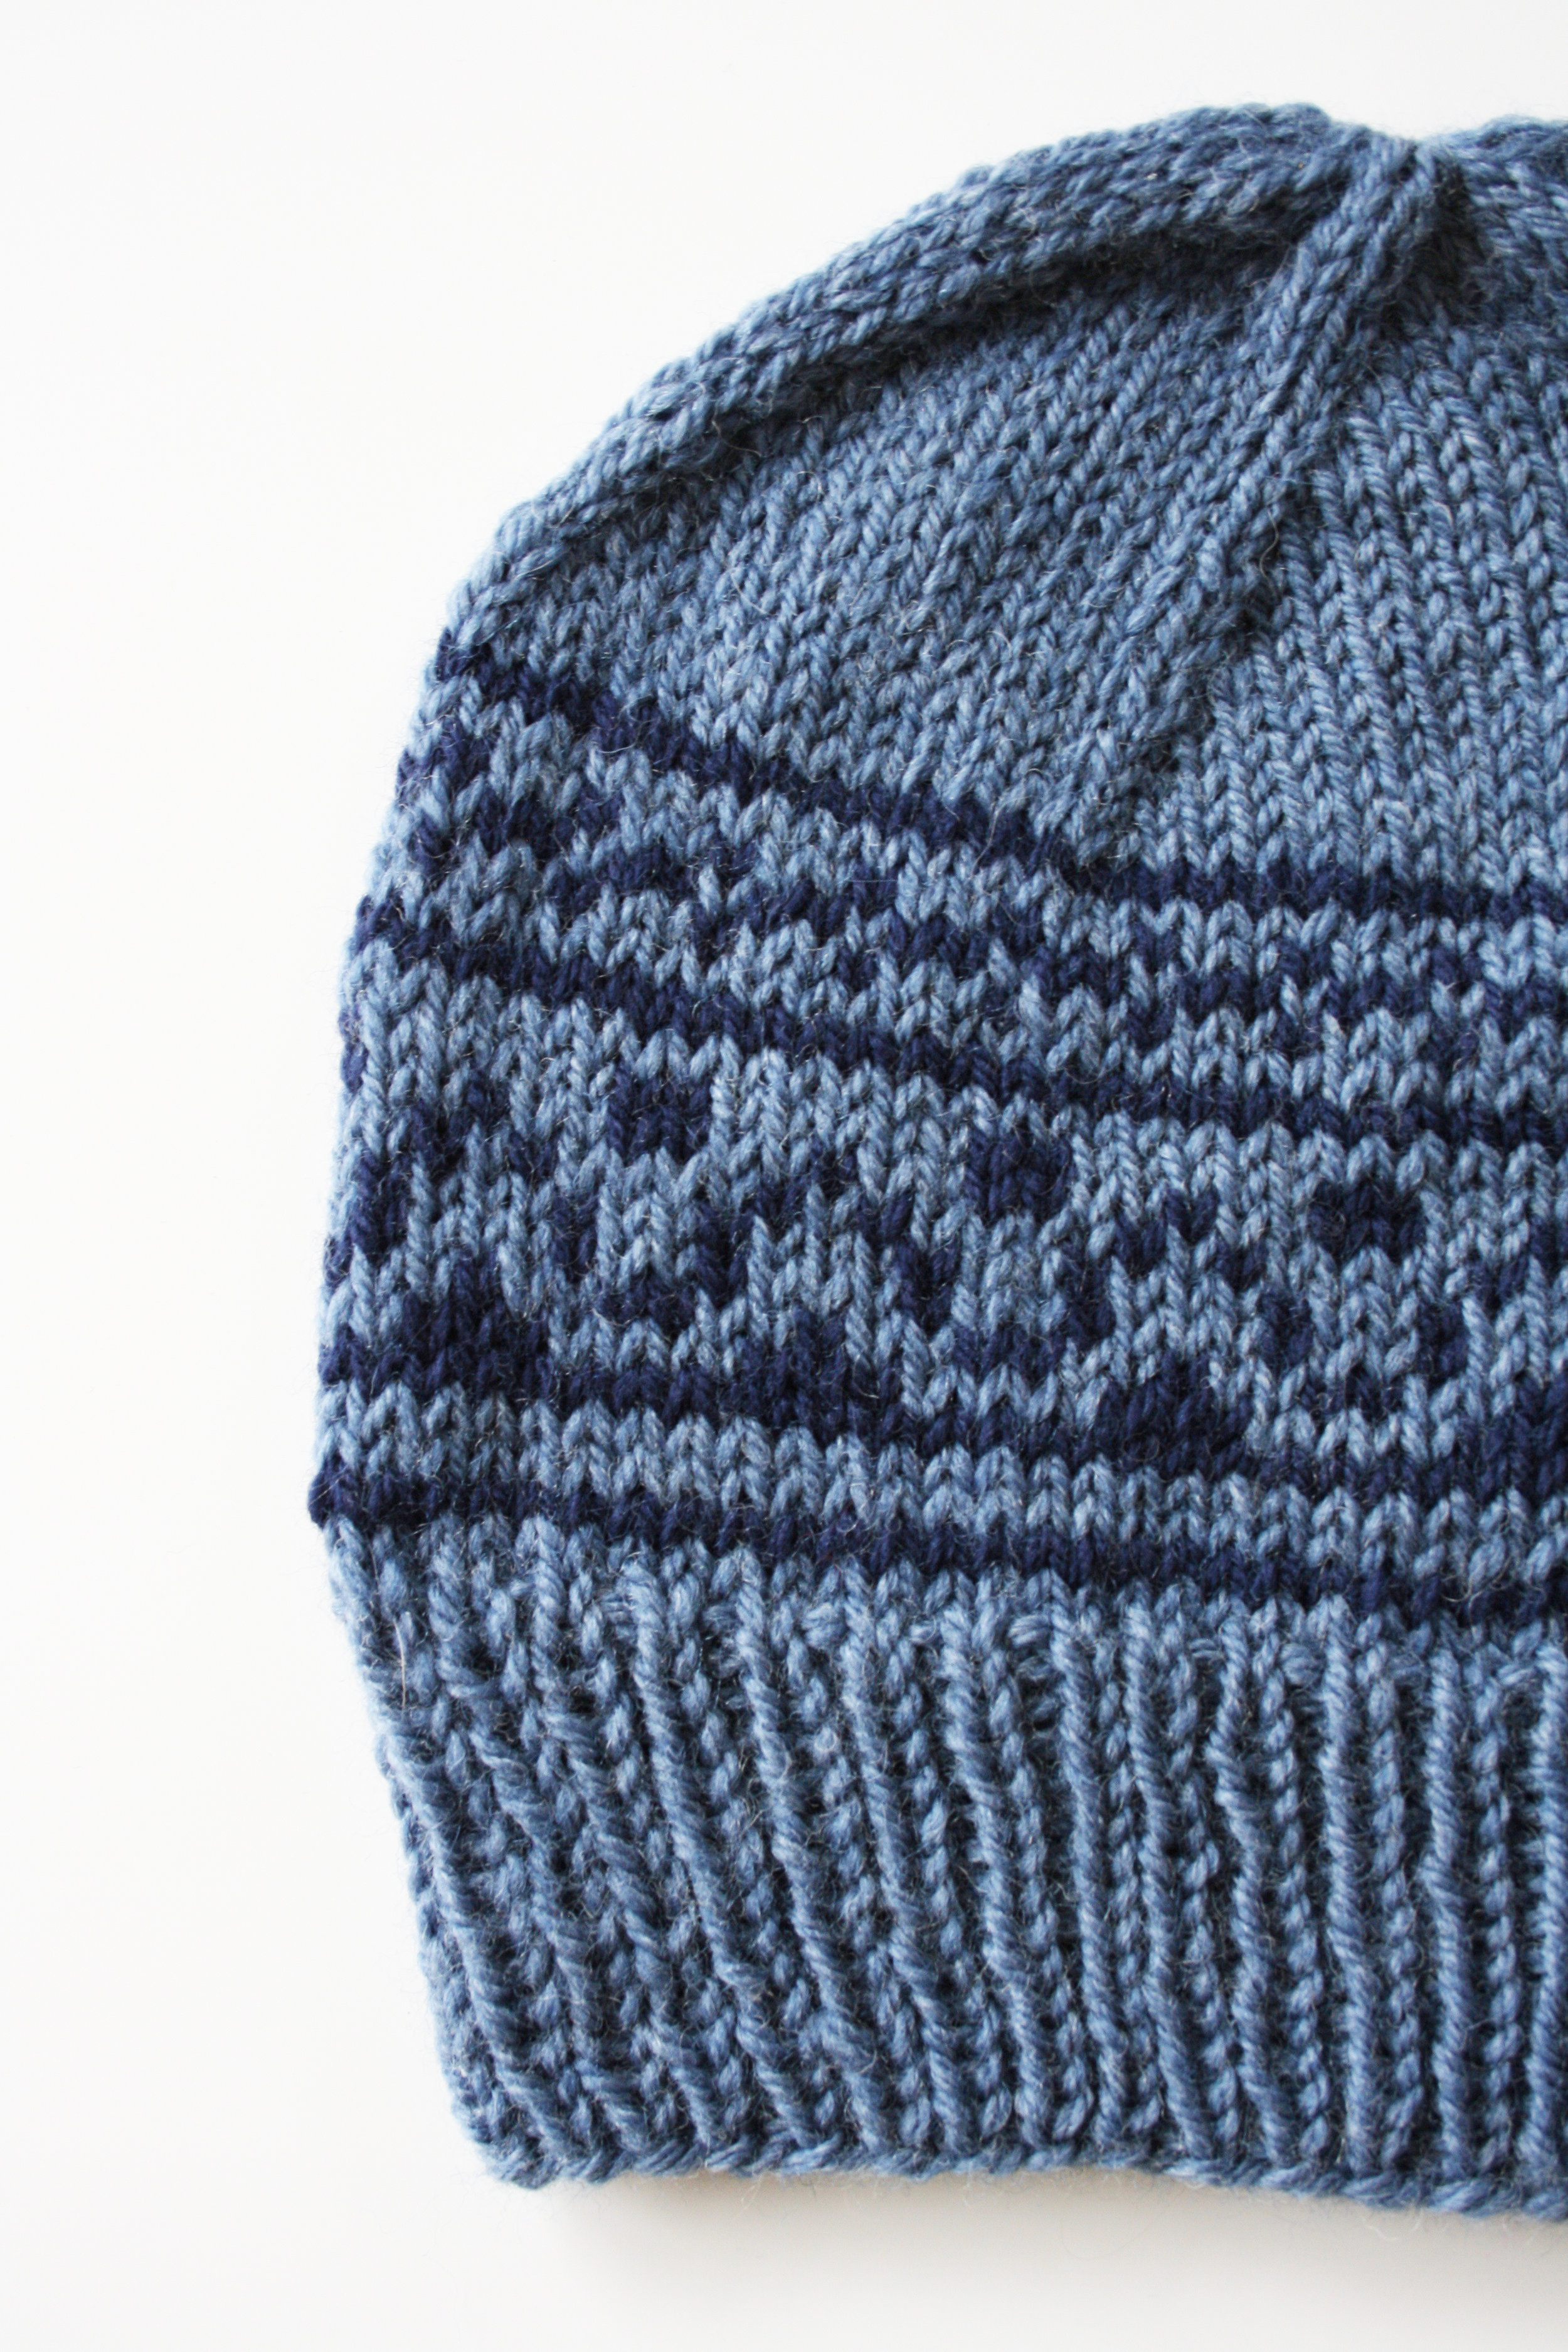 Taiga-Stranded-colorwork-hat-knitting-pattern-by-elisemade